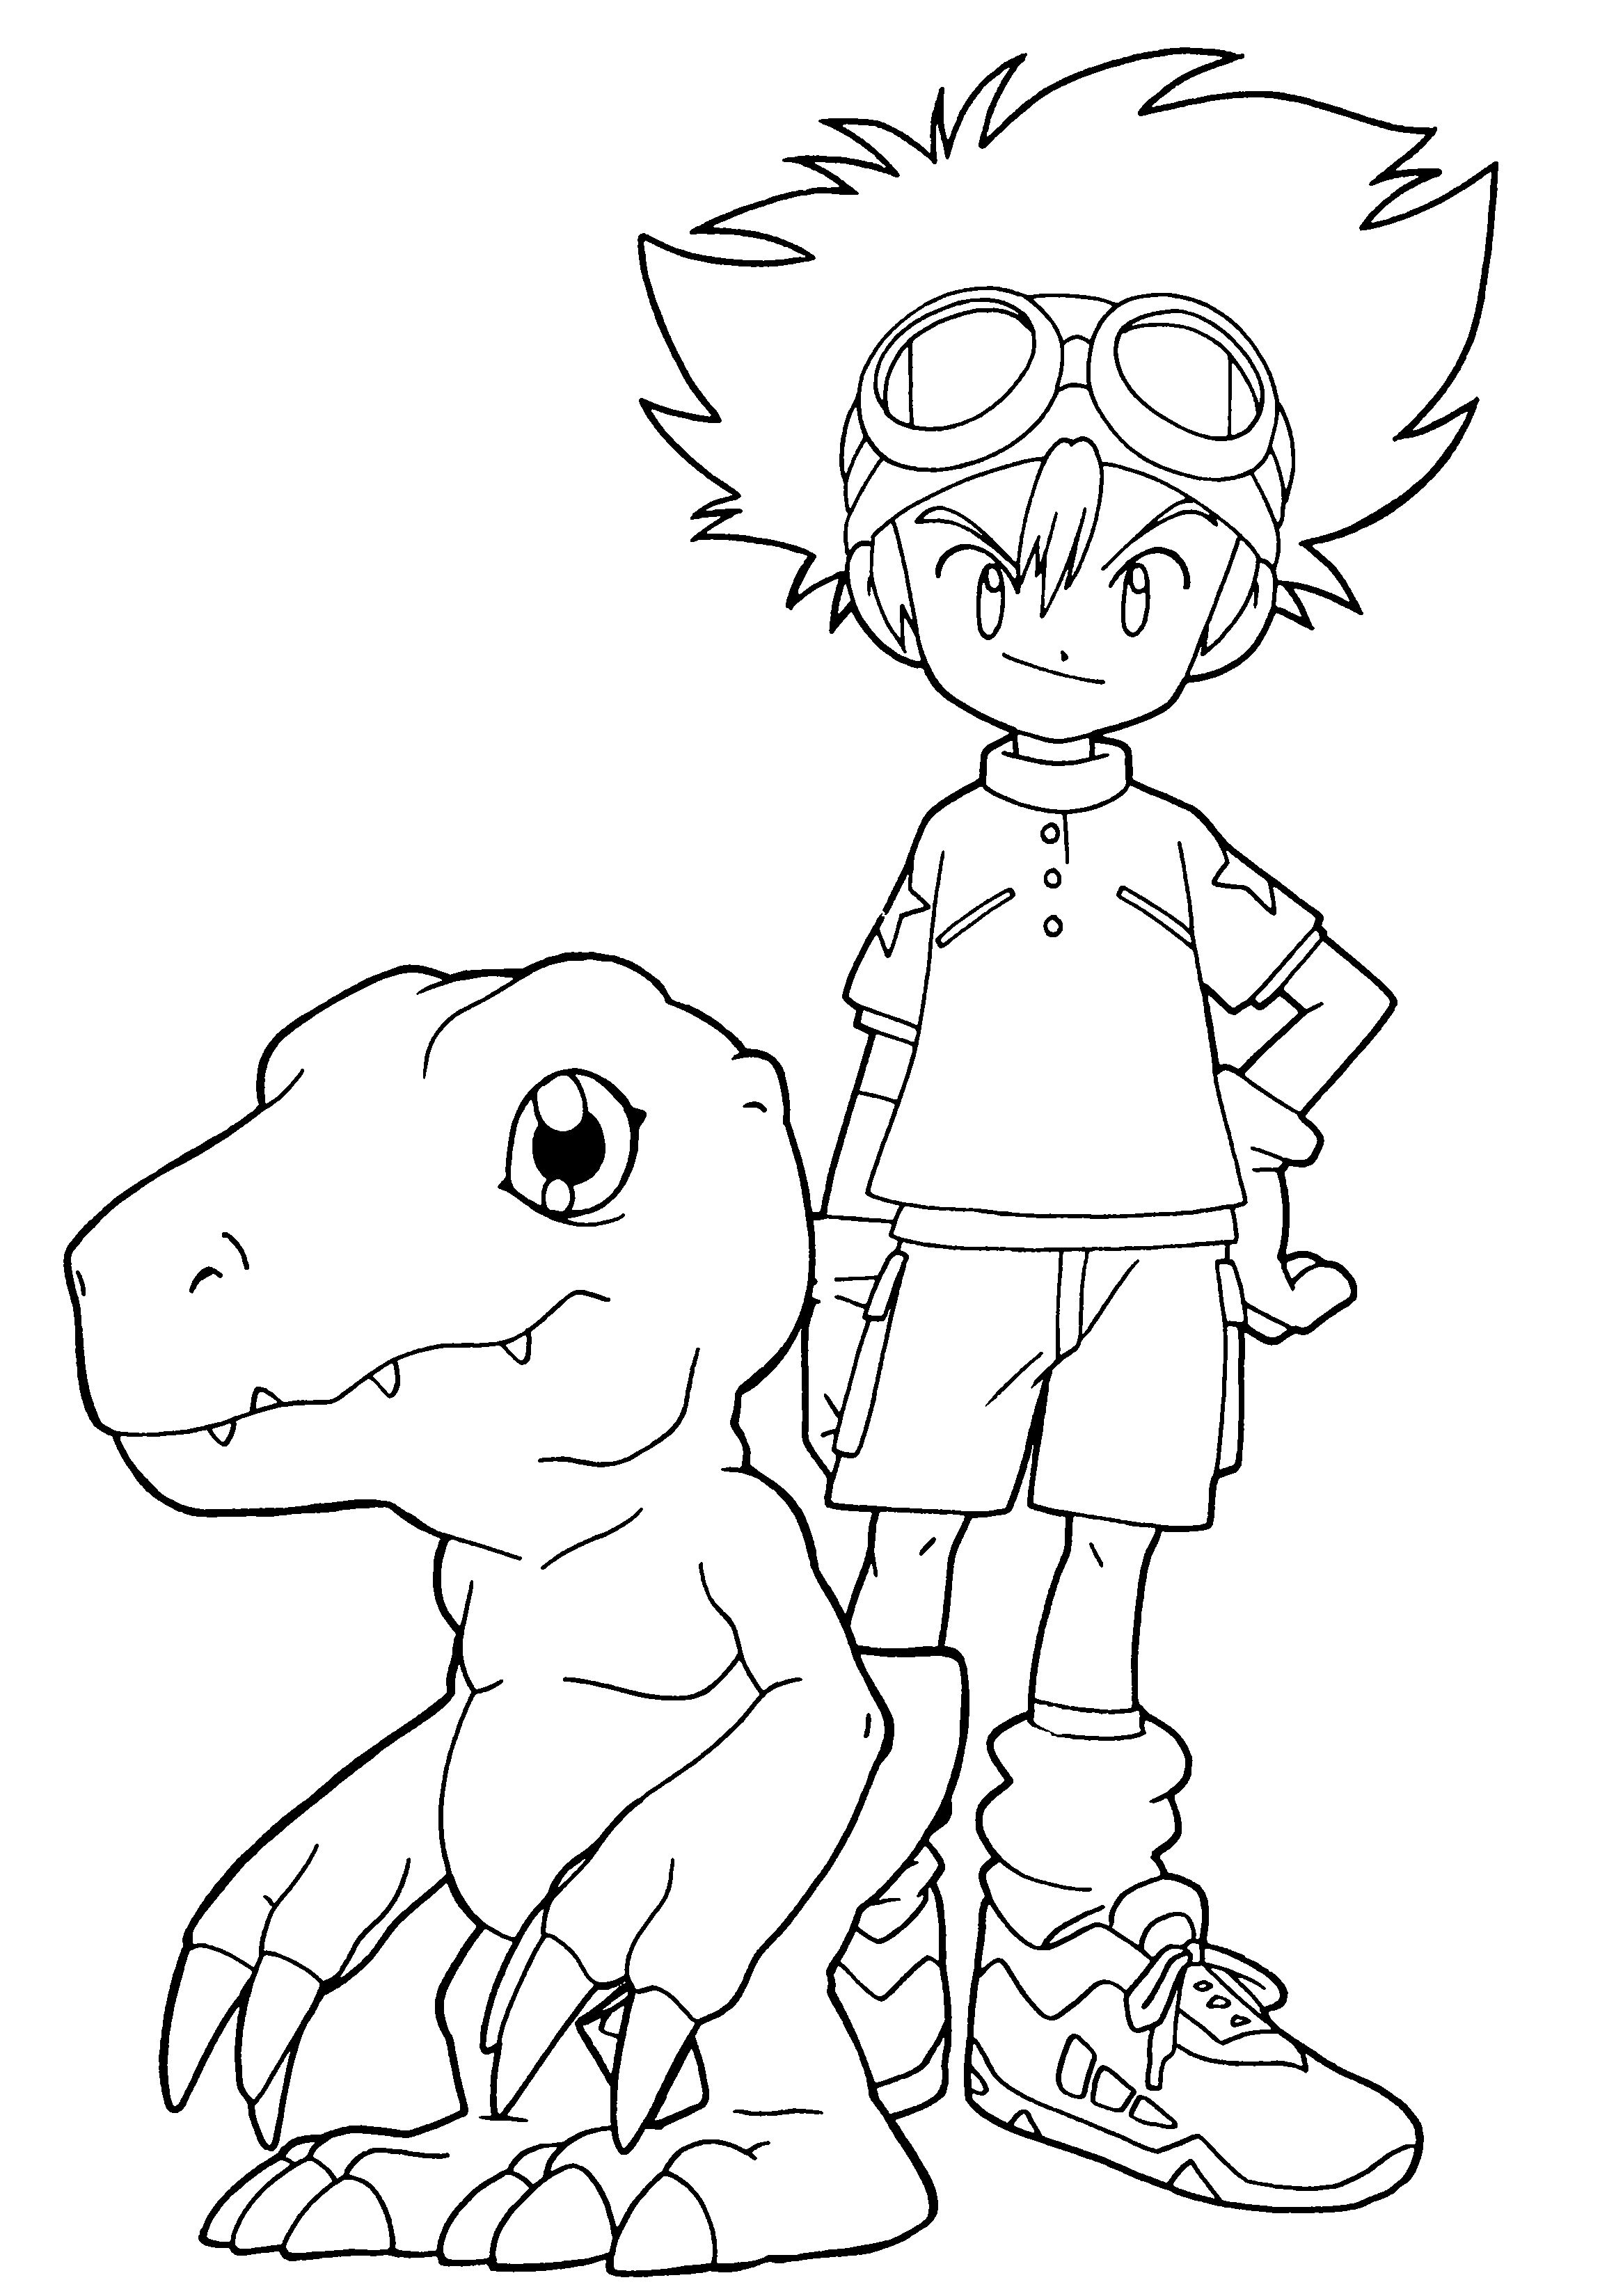 Digimon Coloring Pages Cute Coloring Pages Coloring Pages Digimon